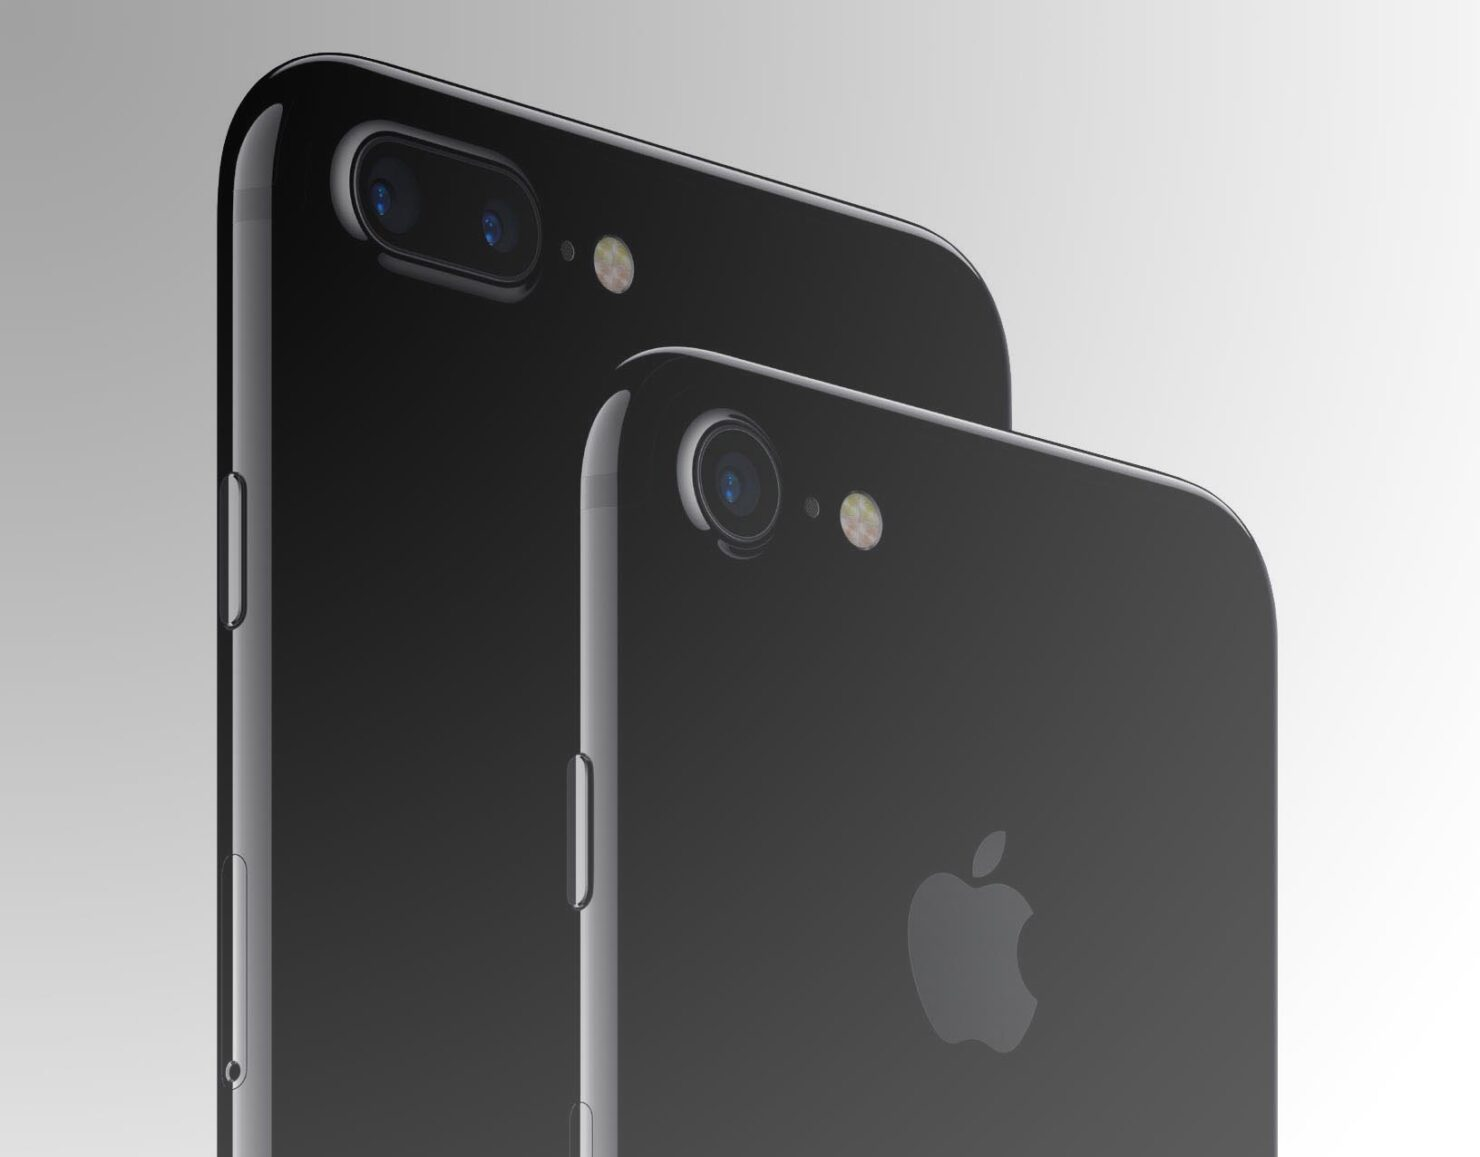 Tim Cook Gives You Another Reason to Purchase the iPhone 7 Plus – Check Out These Image Previews